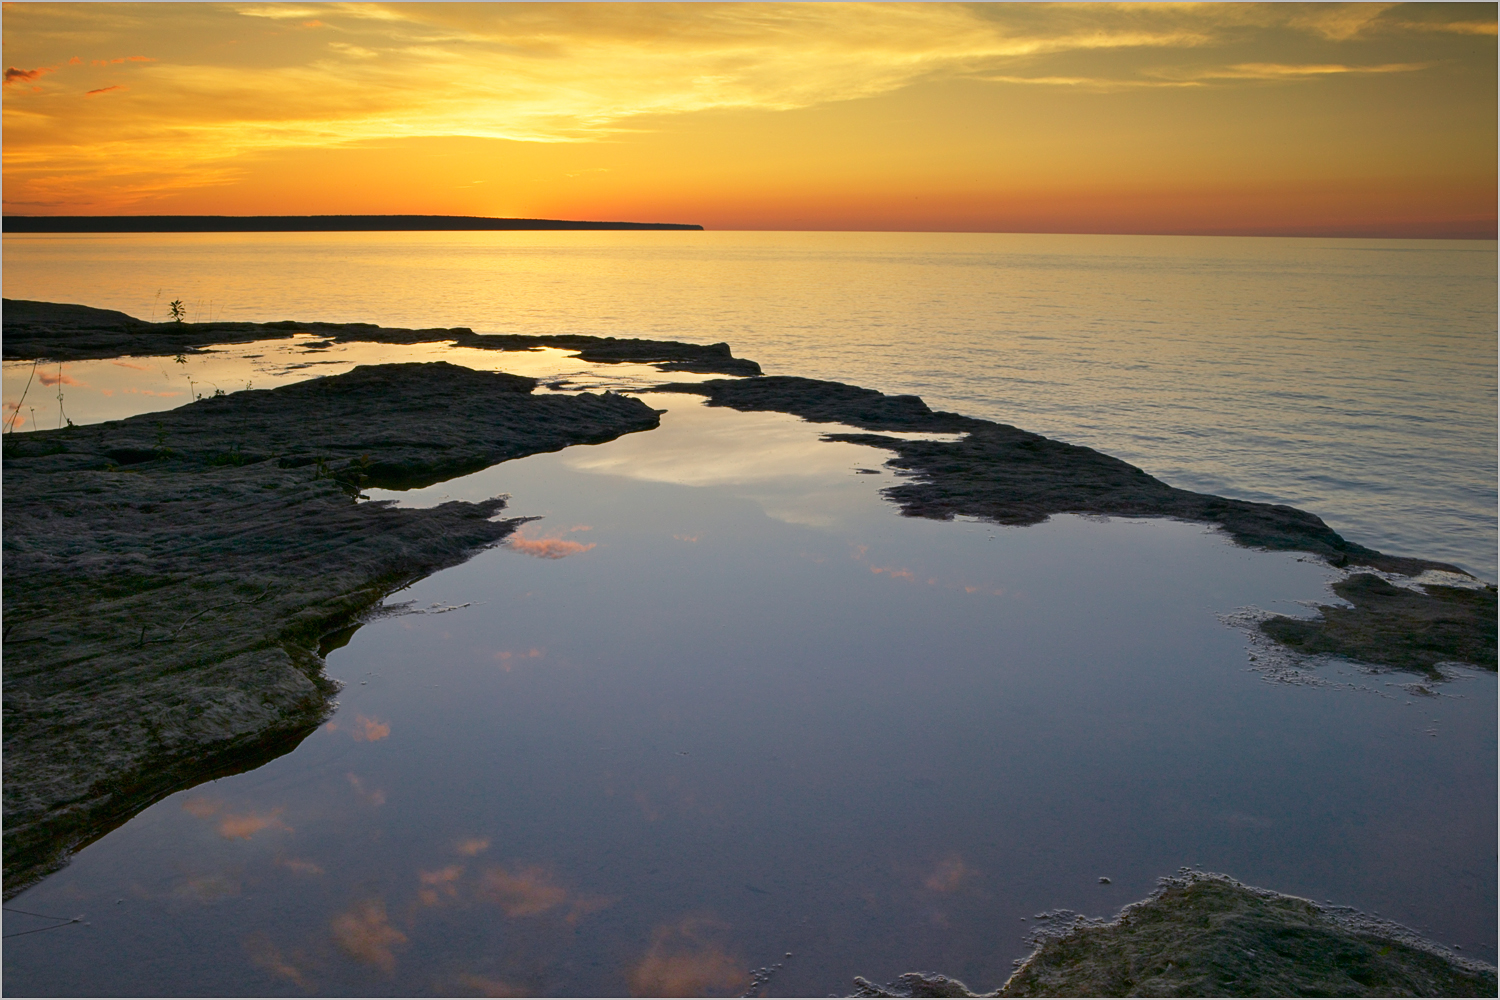 Lake Superior shoreline at sunset in Michigan's Upper Peninsula